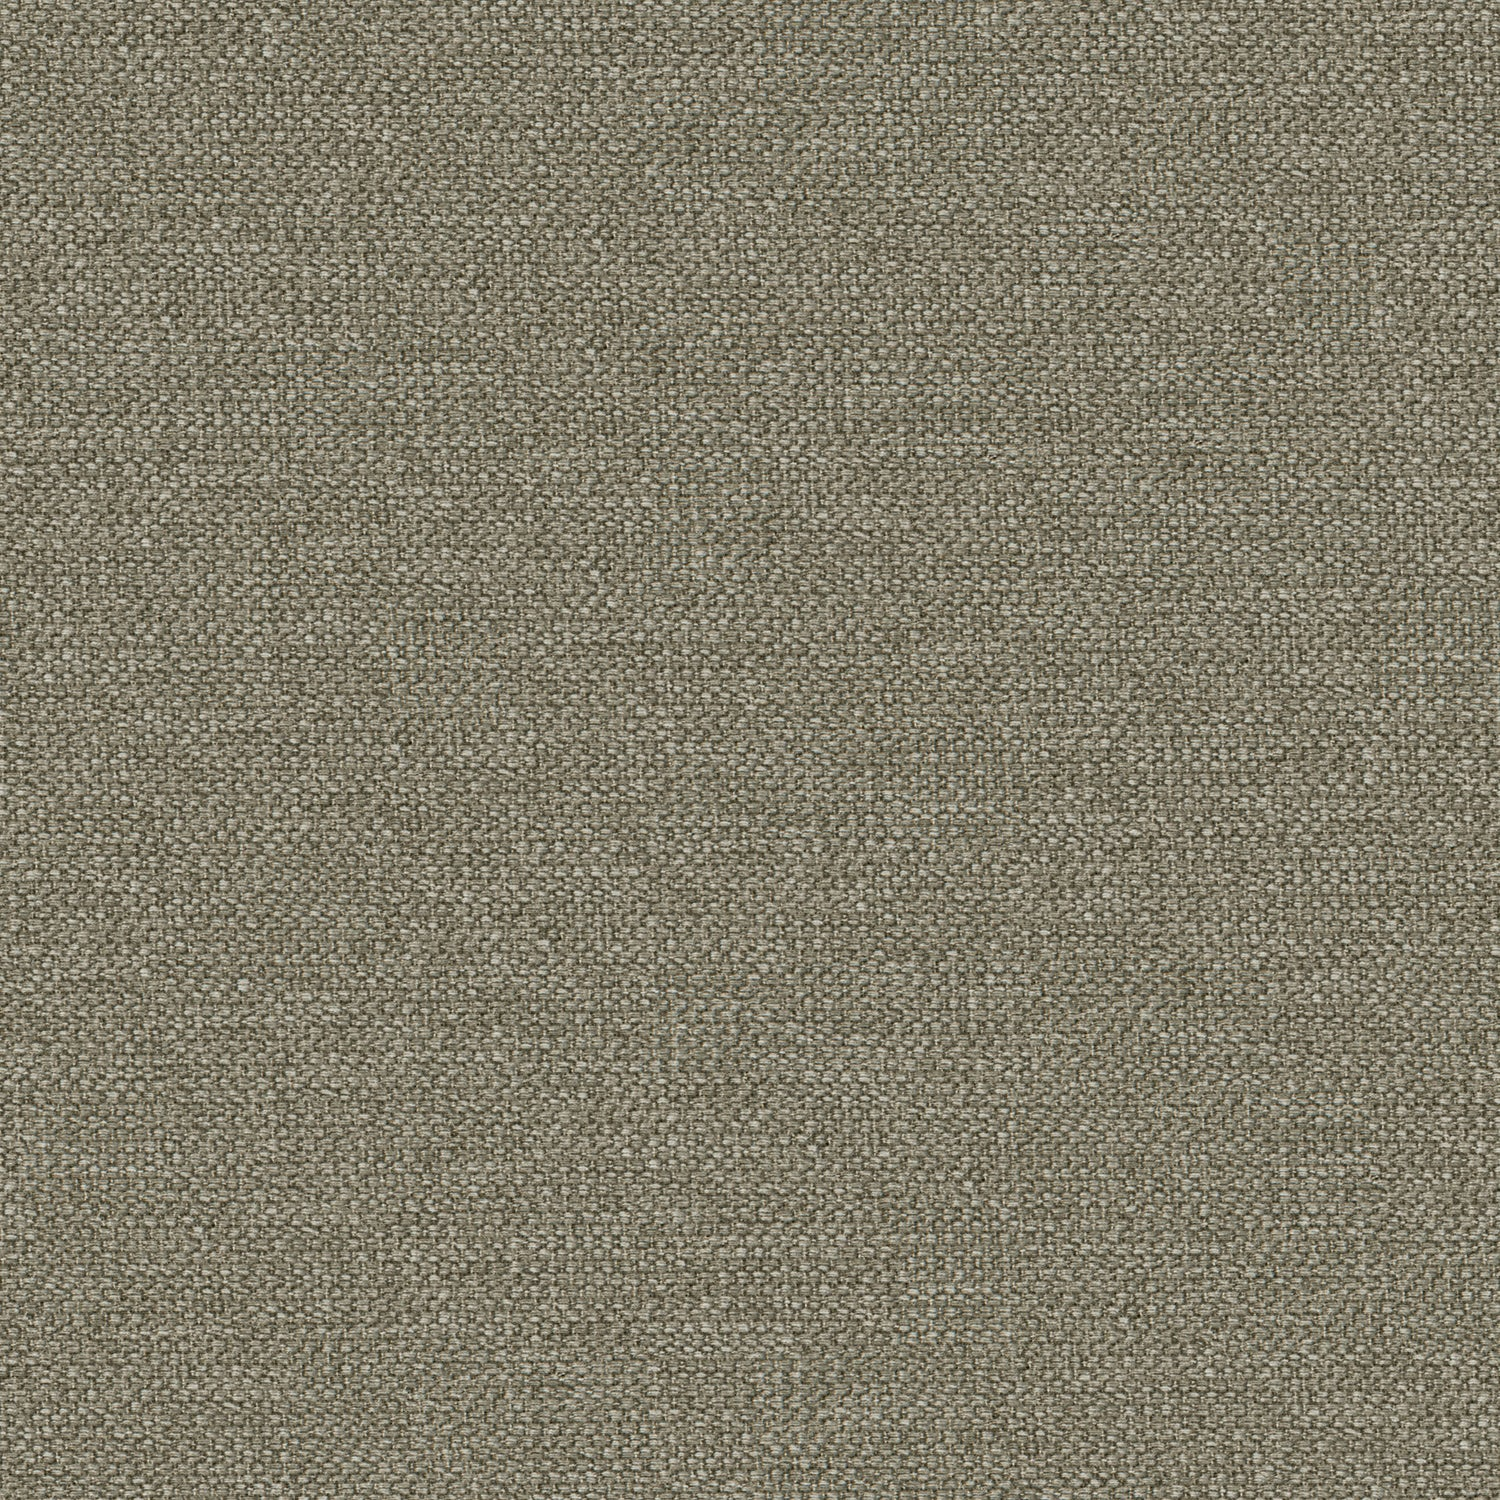 Taupe plain cotton fabric for contract and domestic curtains and upholstery